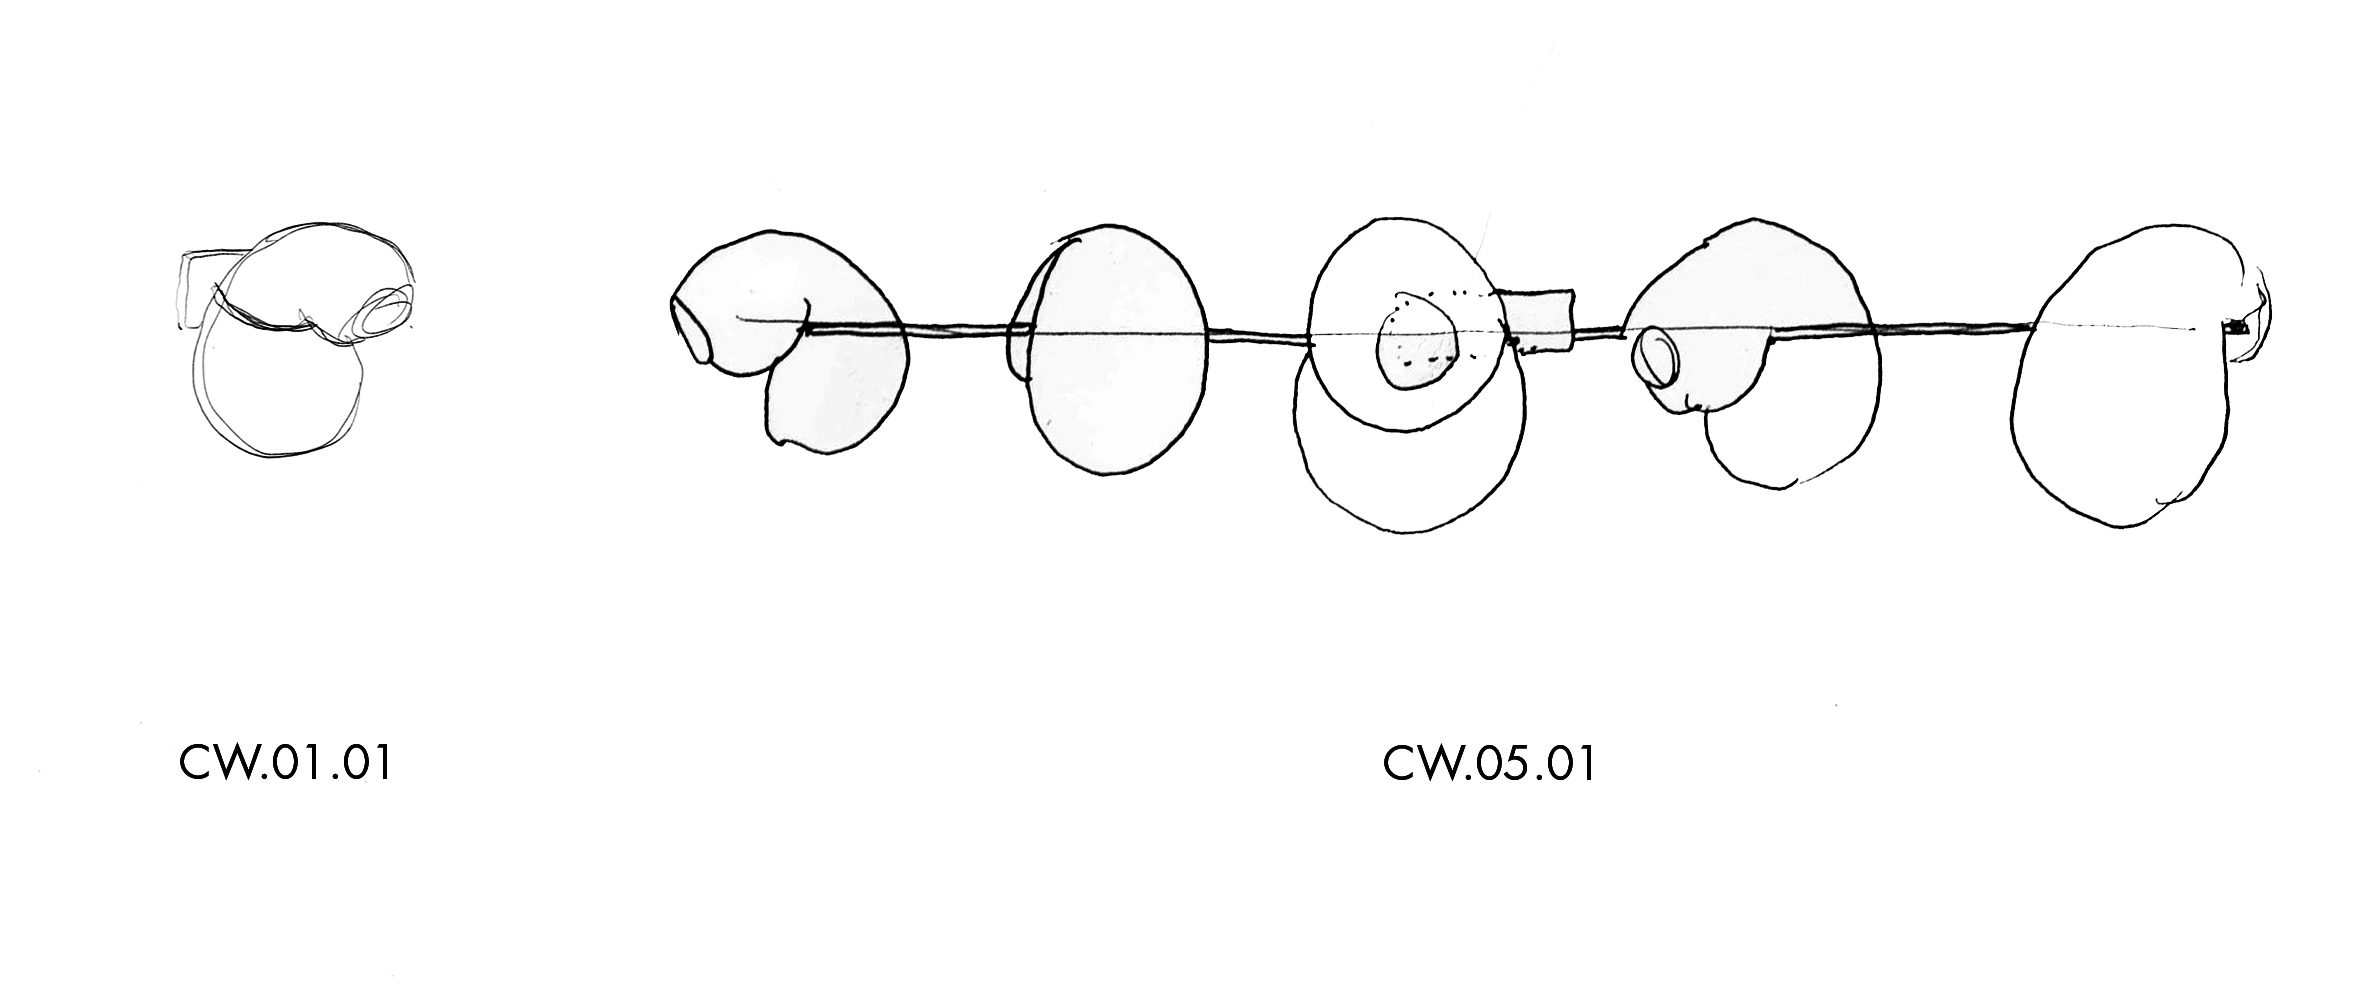 B6_CW.01.01 and CW.05.01